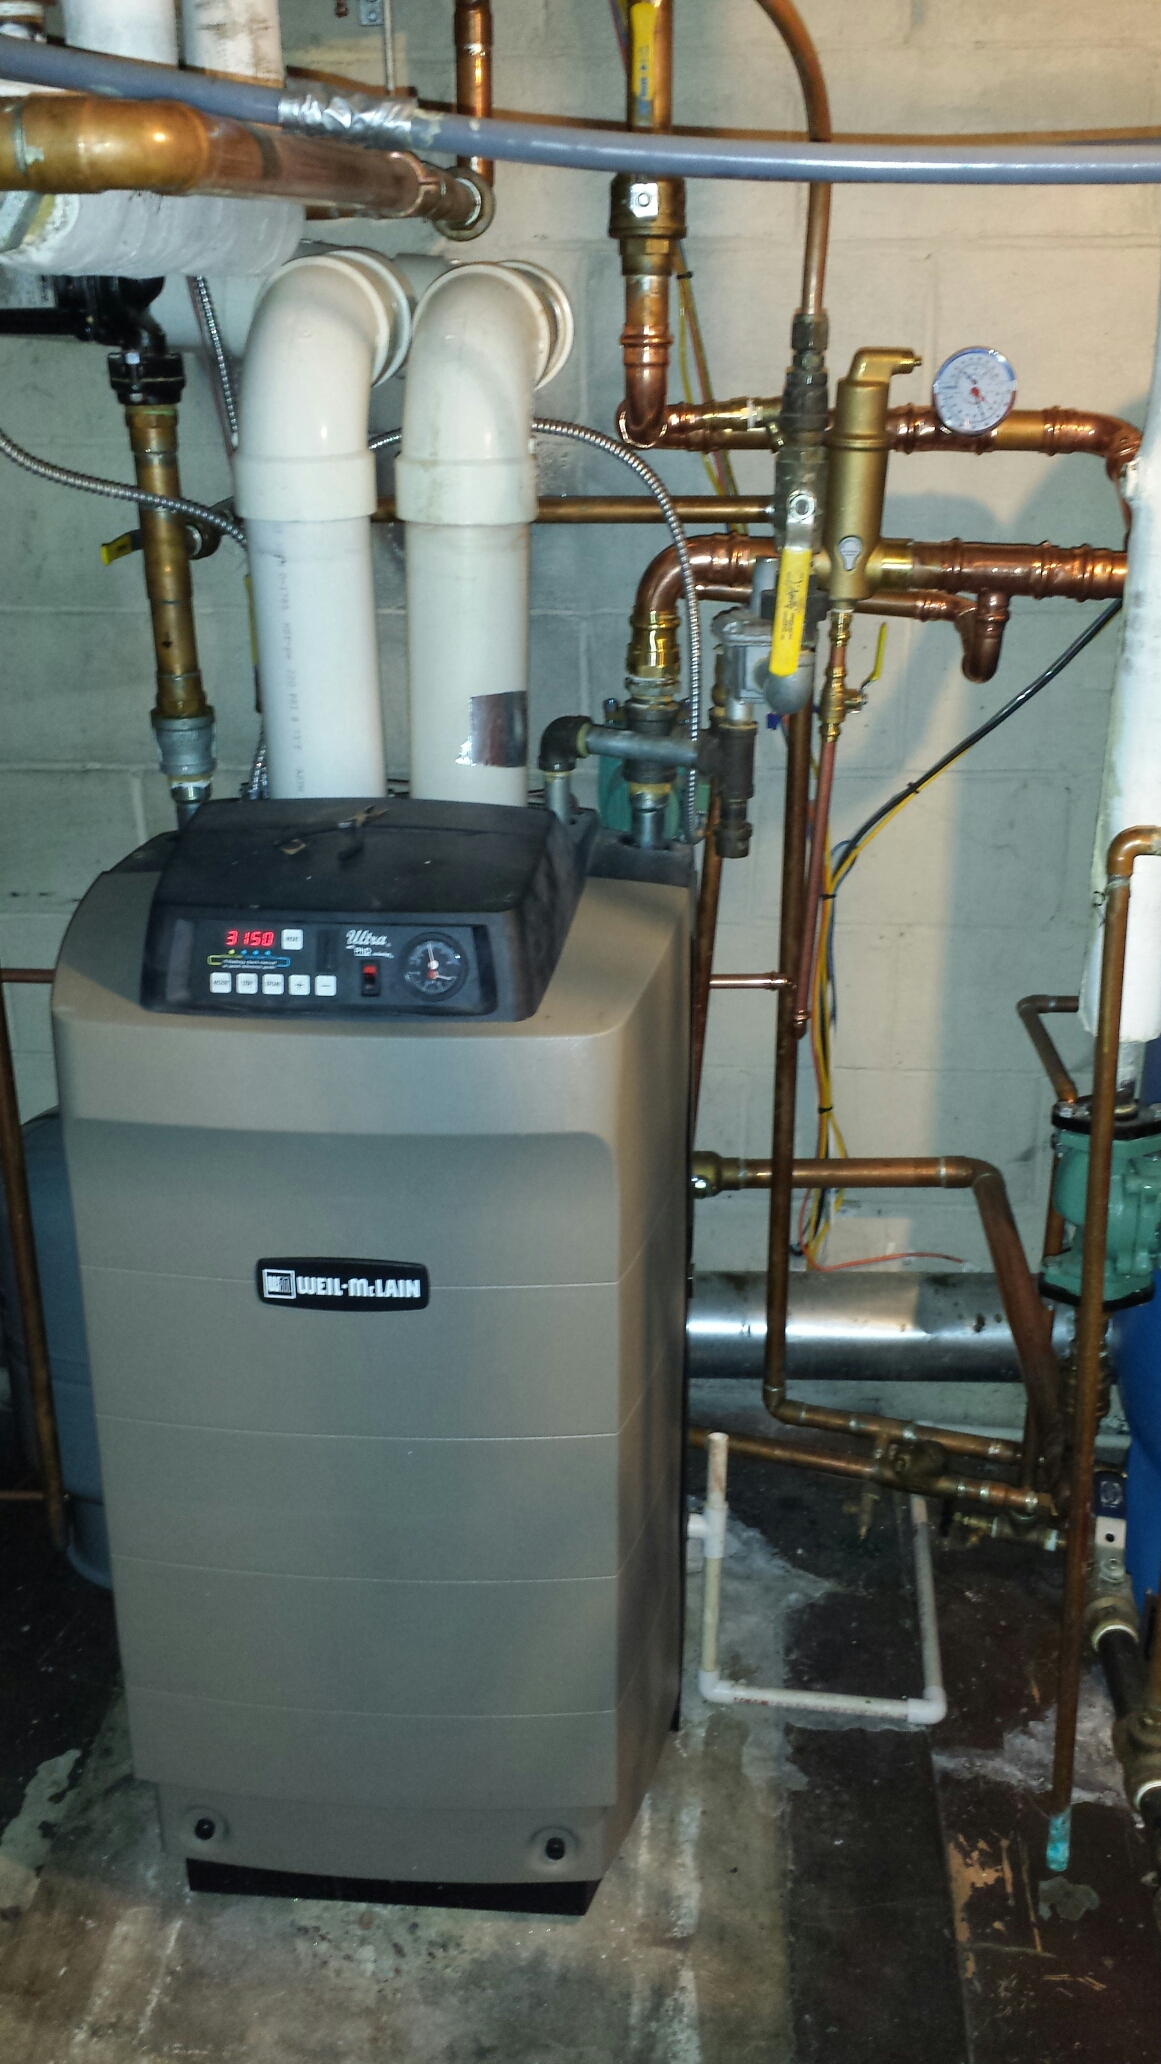 Wayzata, MN - Heating service. Replaced a gasket and insulation kit on a Weil-McLain boiler.